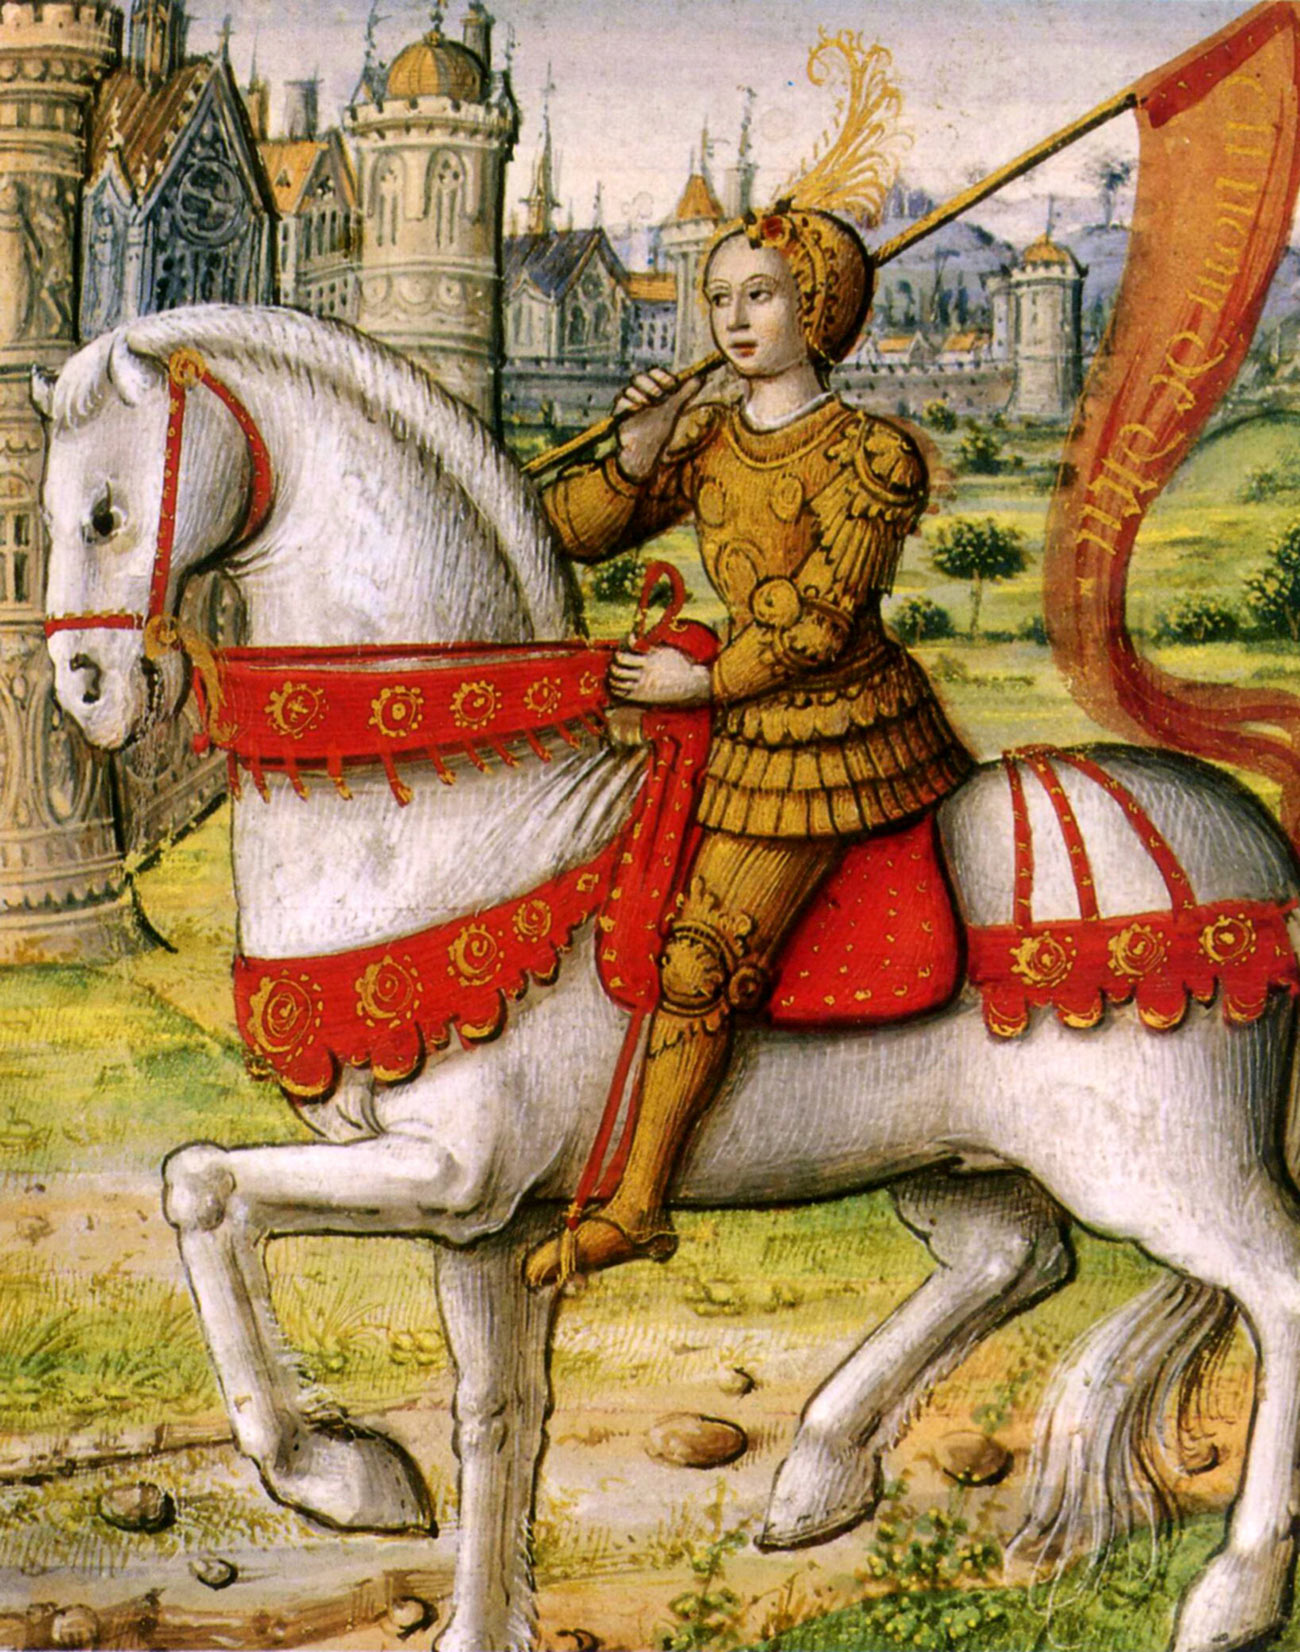 A young woman wearing golden armor and a golden helmet carries a red pennant bearing writing in gold and rides a white horse.